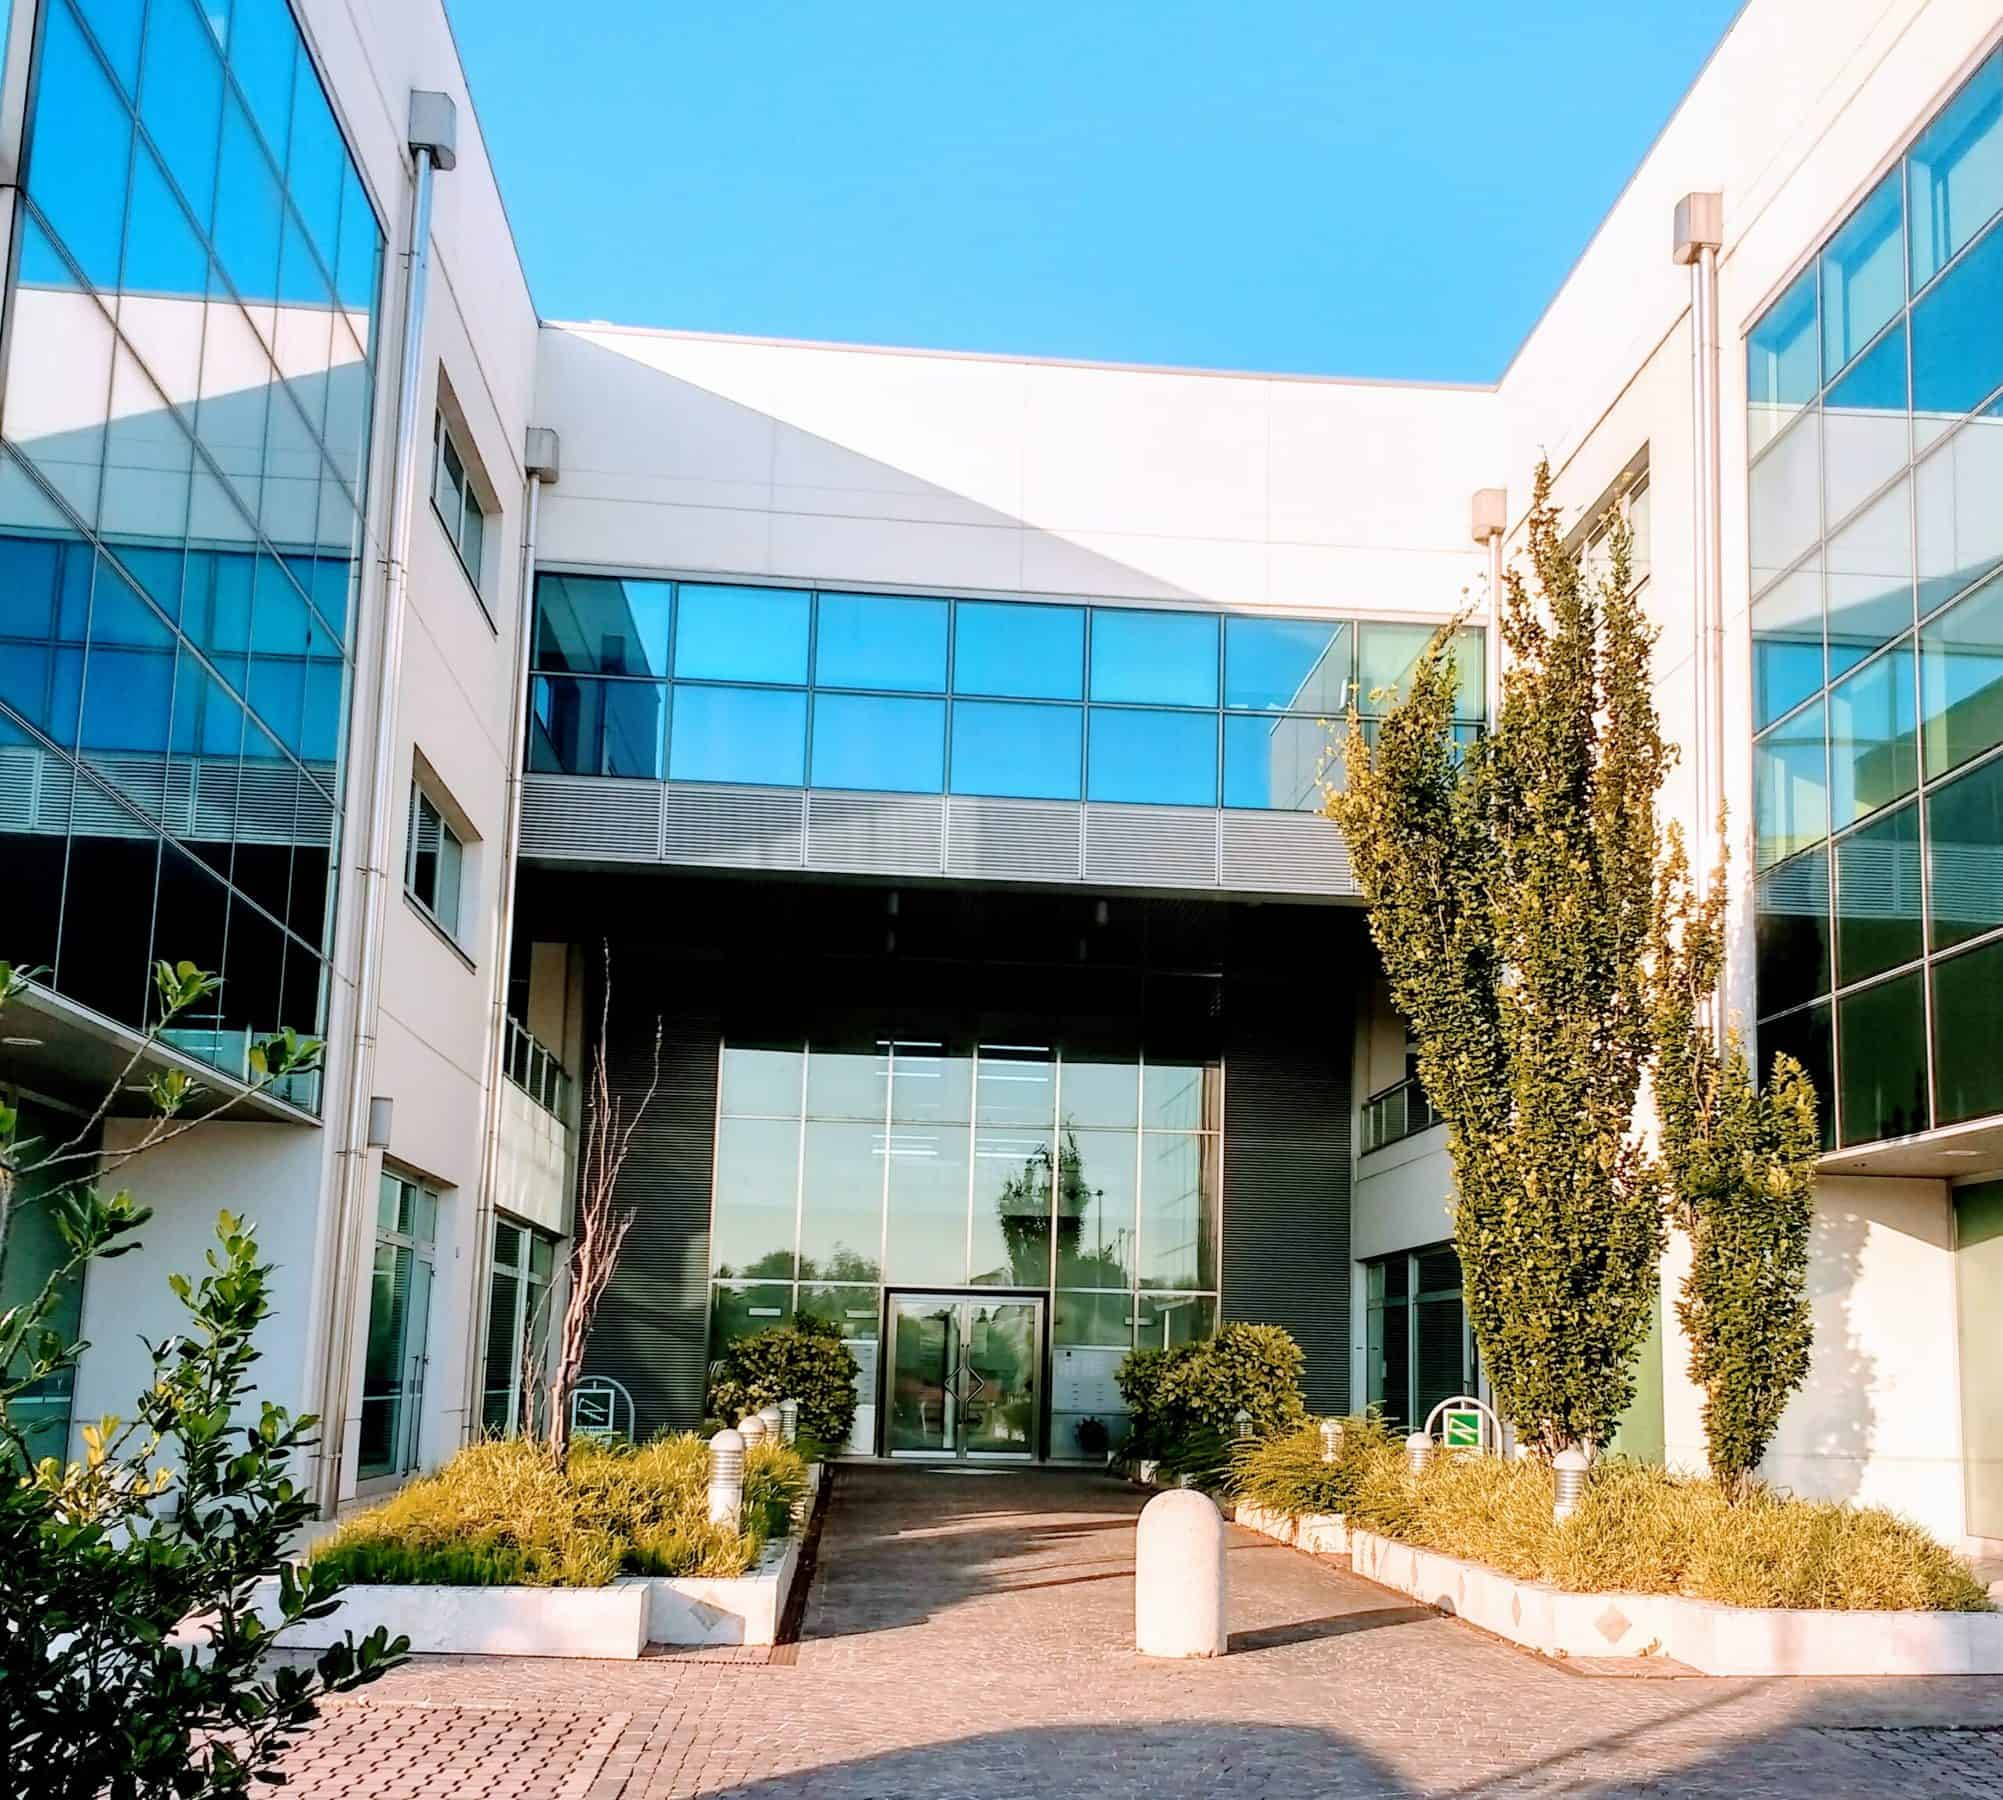 Anniversary Amarula Solutions Italy. Amarula Solutions Italy Office is located at Le Canevare street, in Treviso.